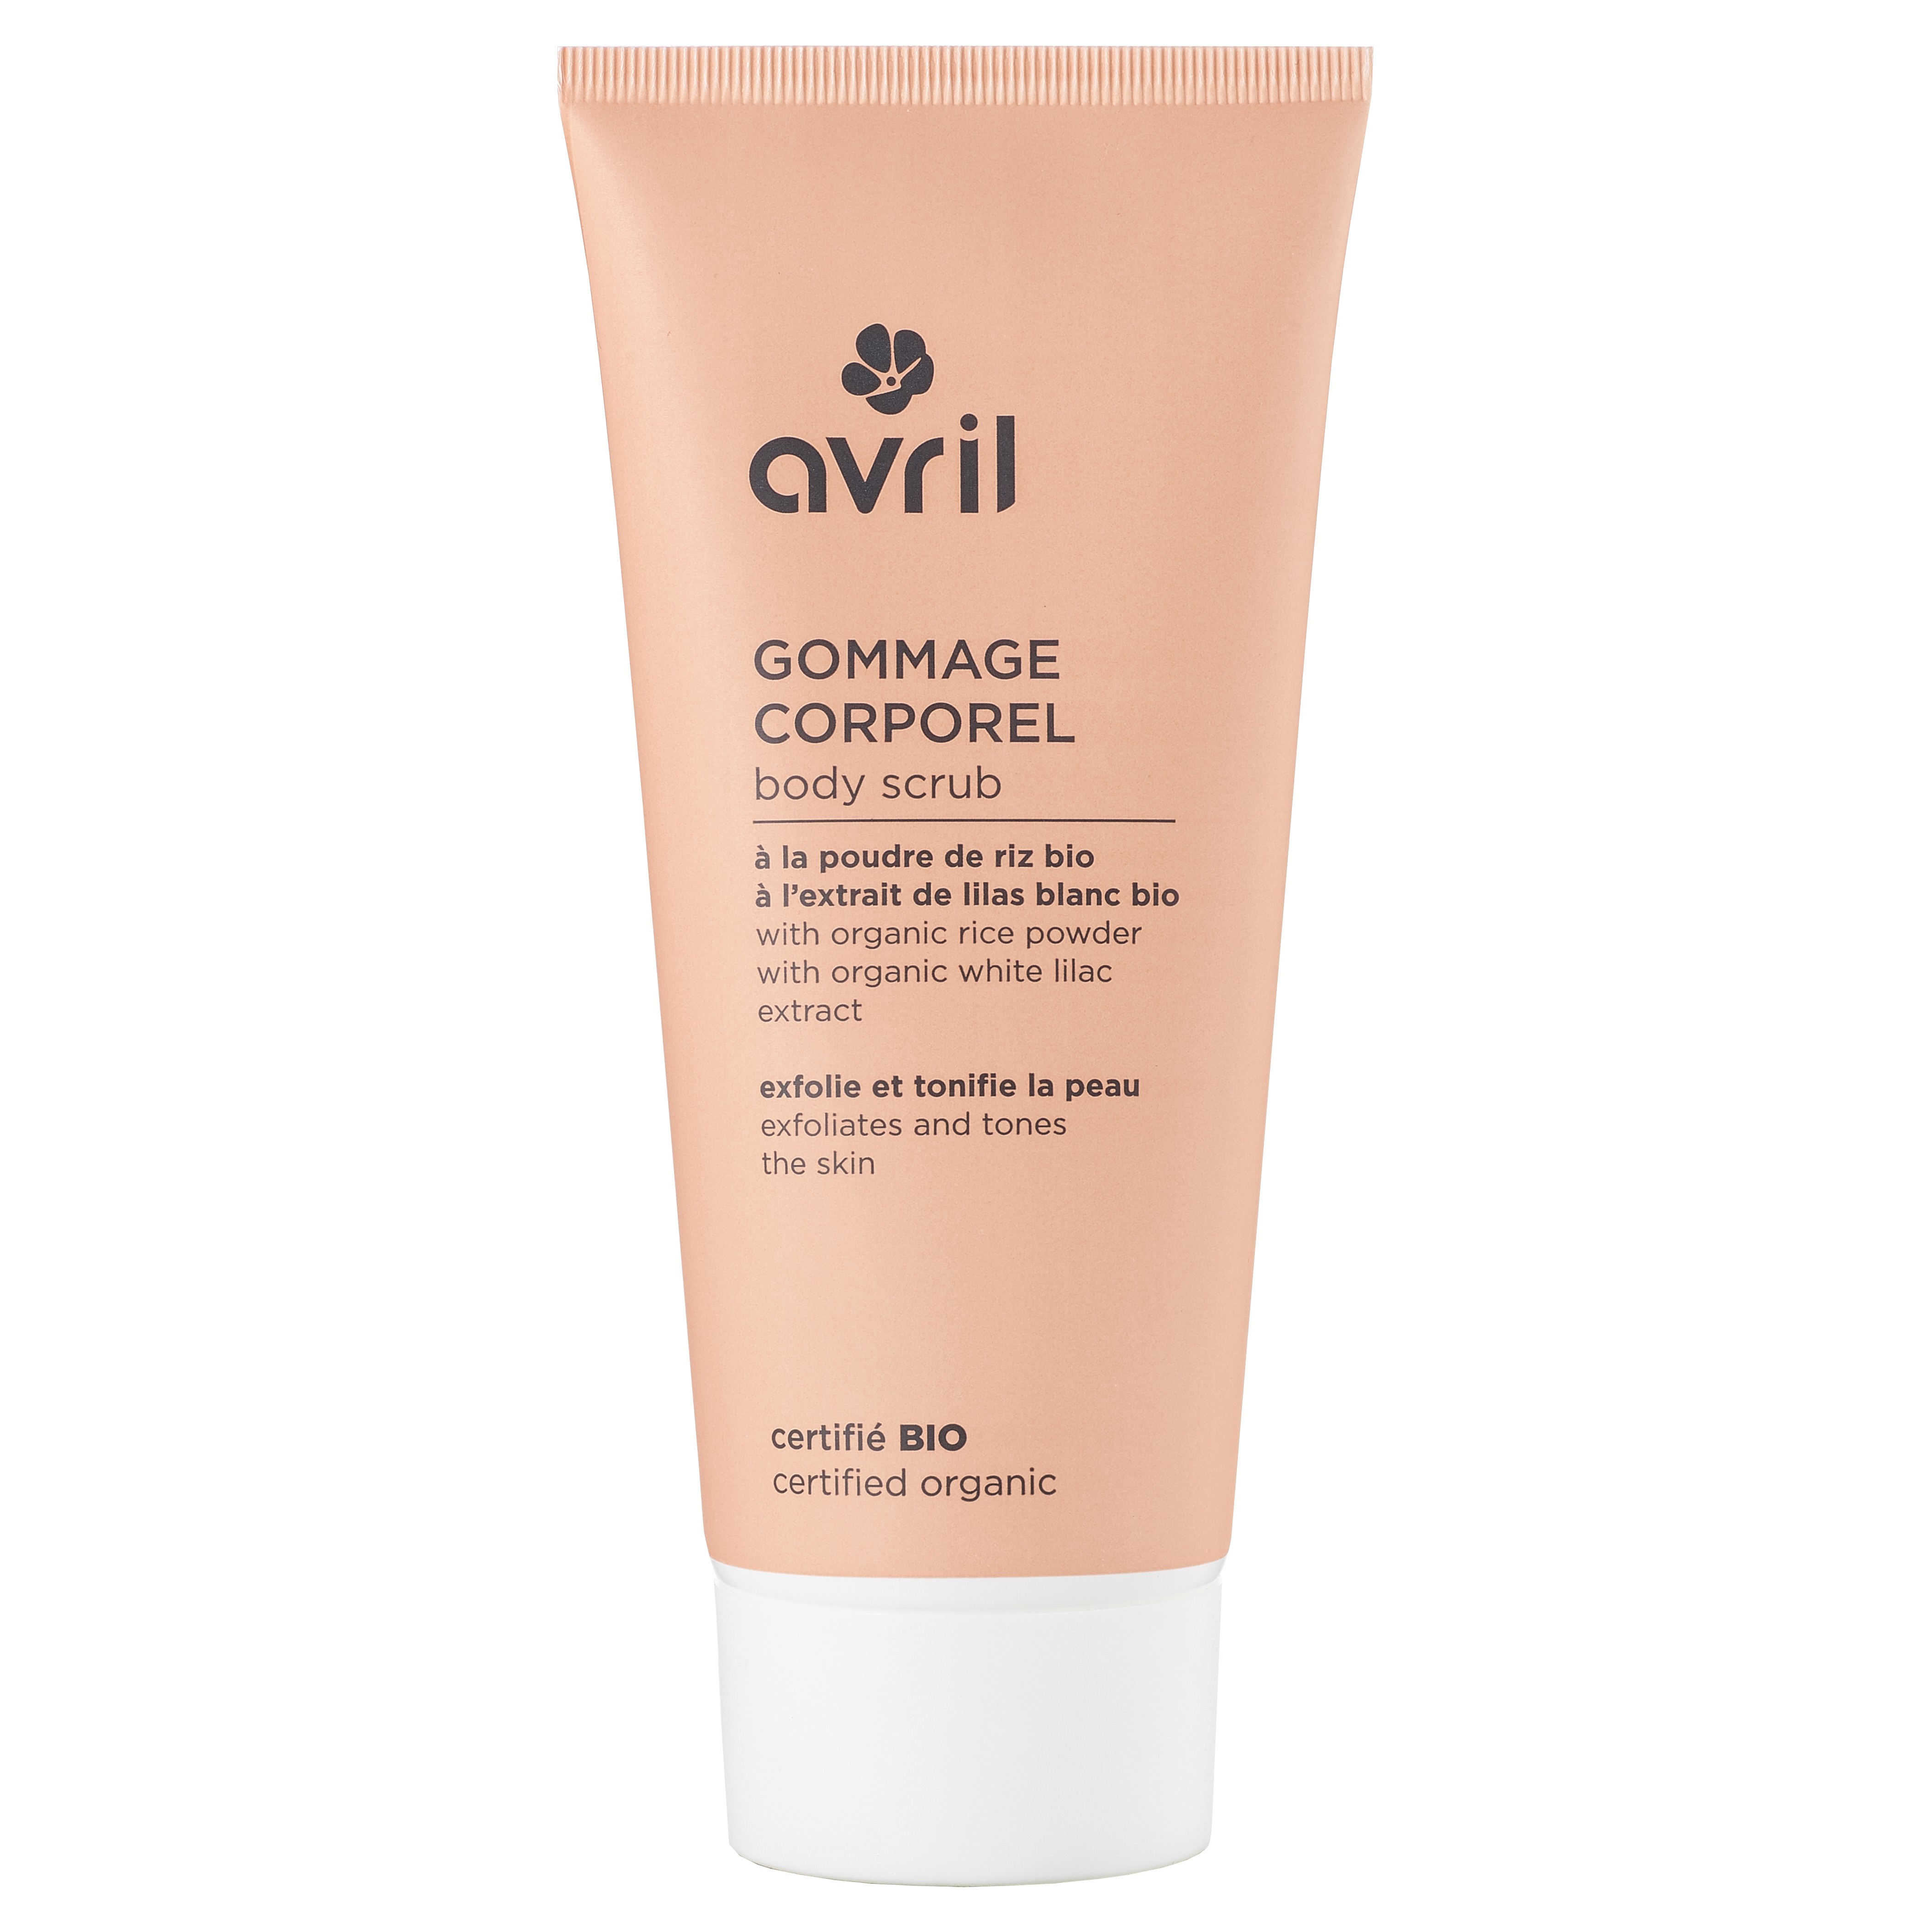 Gommage: what is this procedure or cosmetic